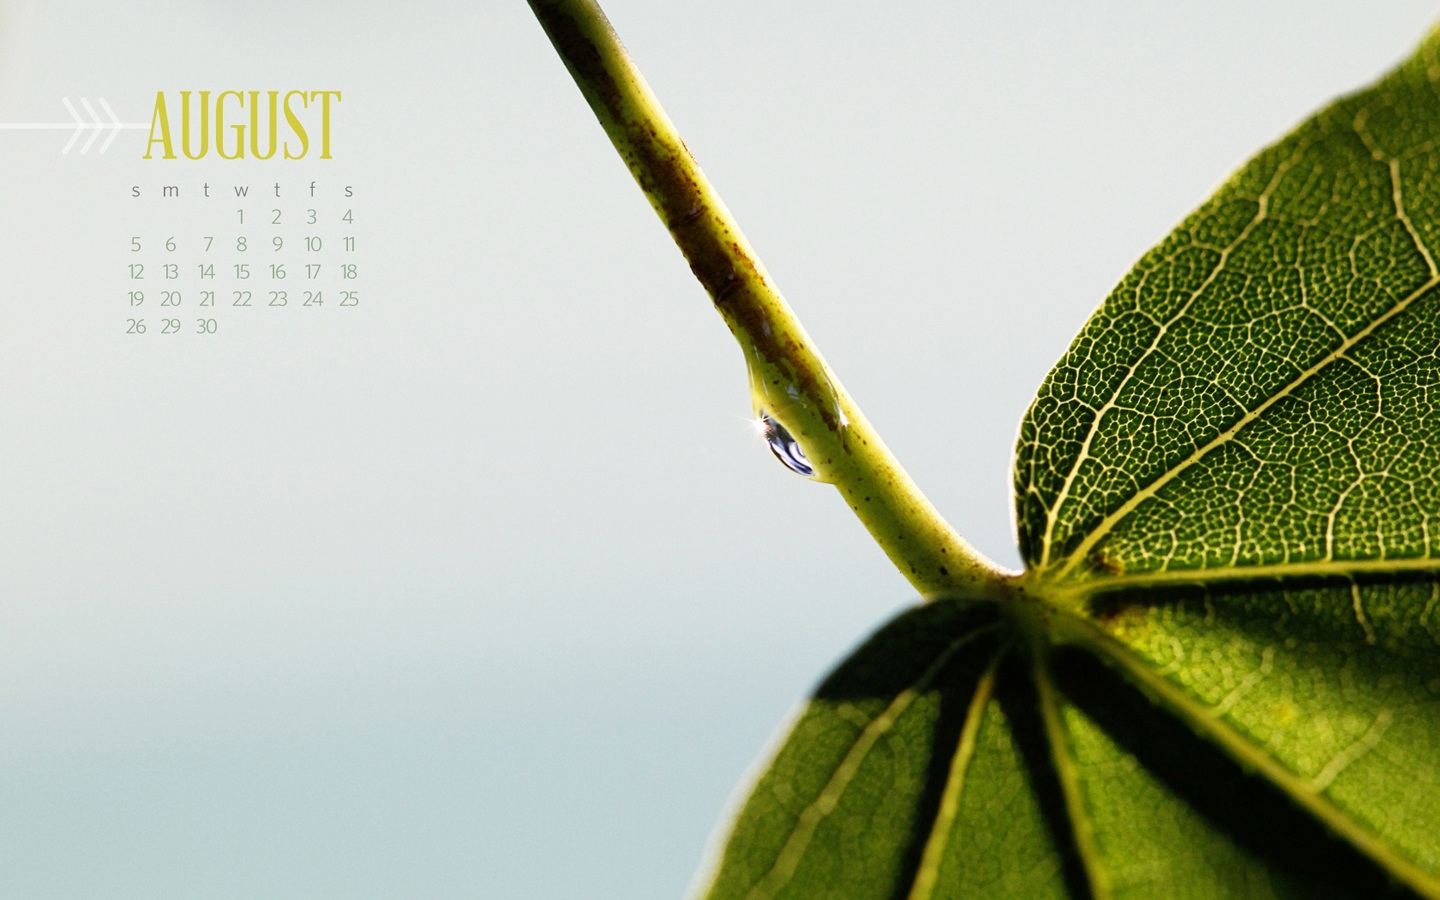 In January Calendar Wallpaper 31704